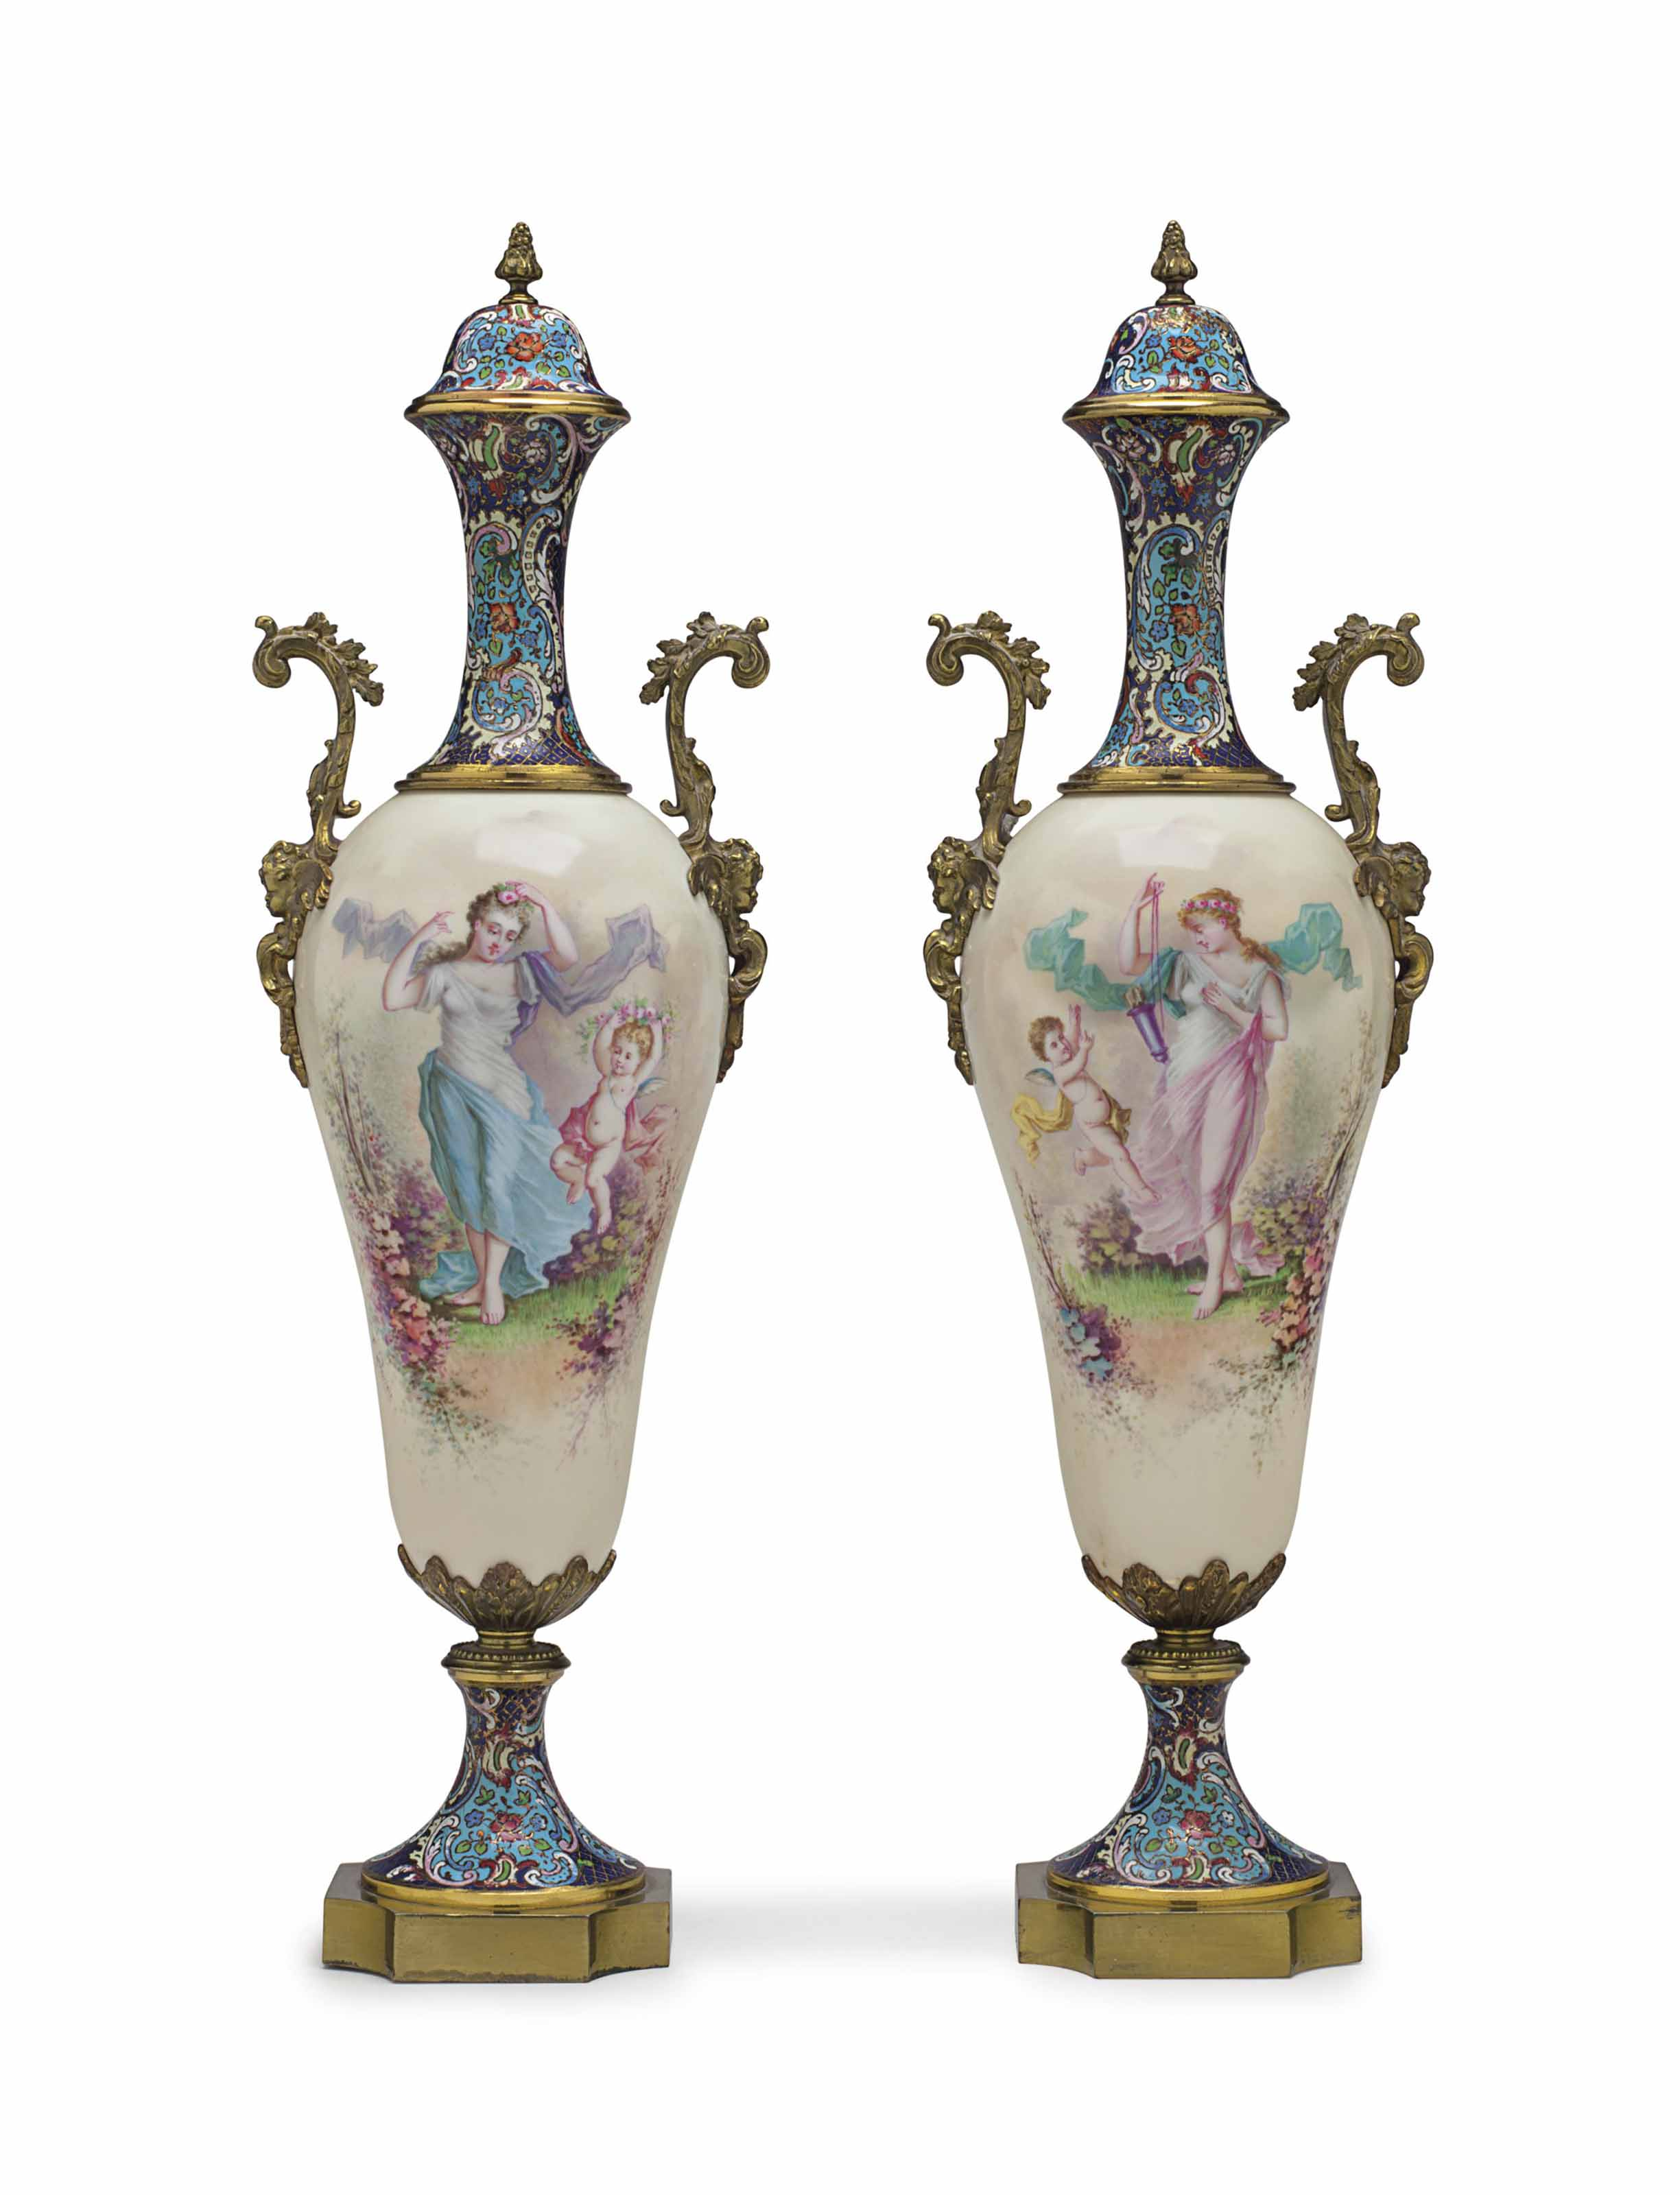 A PAIR OF ORMOLU AND CHAMPLEVE-ENAMEL MOUNTED SEVRES STYLE PORCELAIN VASES AND COVERS